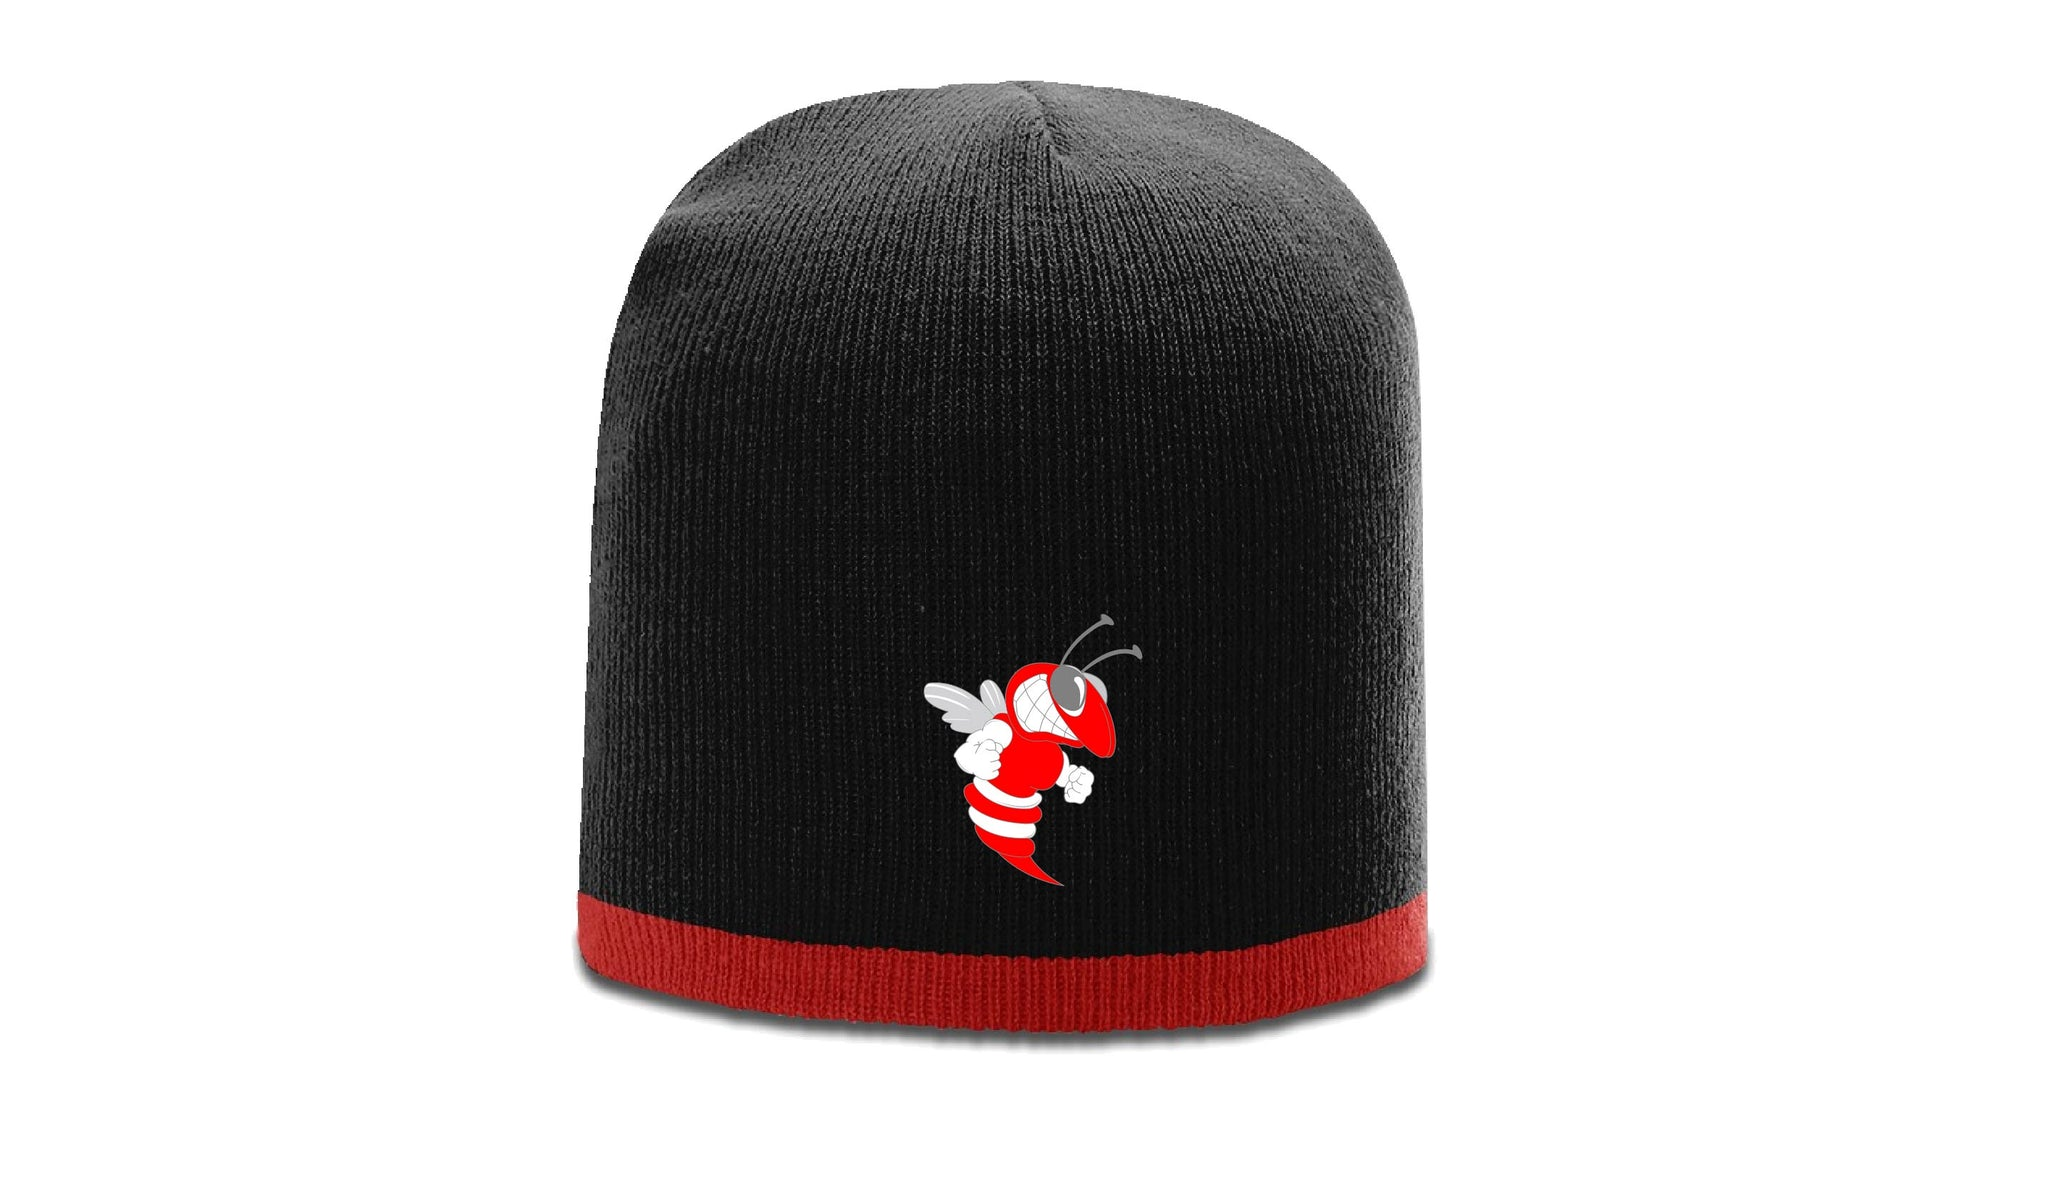 2-Tone Embroidered B'ville Bee Winter Beanie Hat